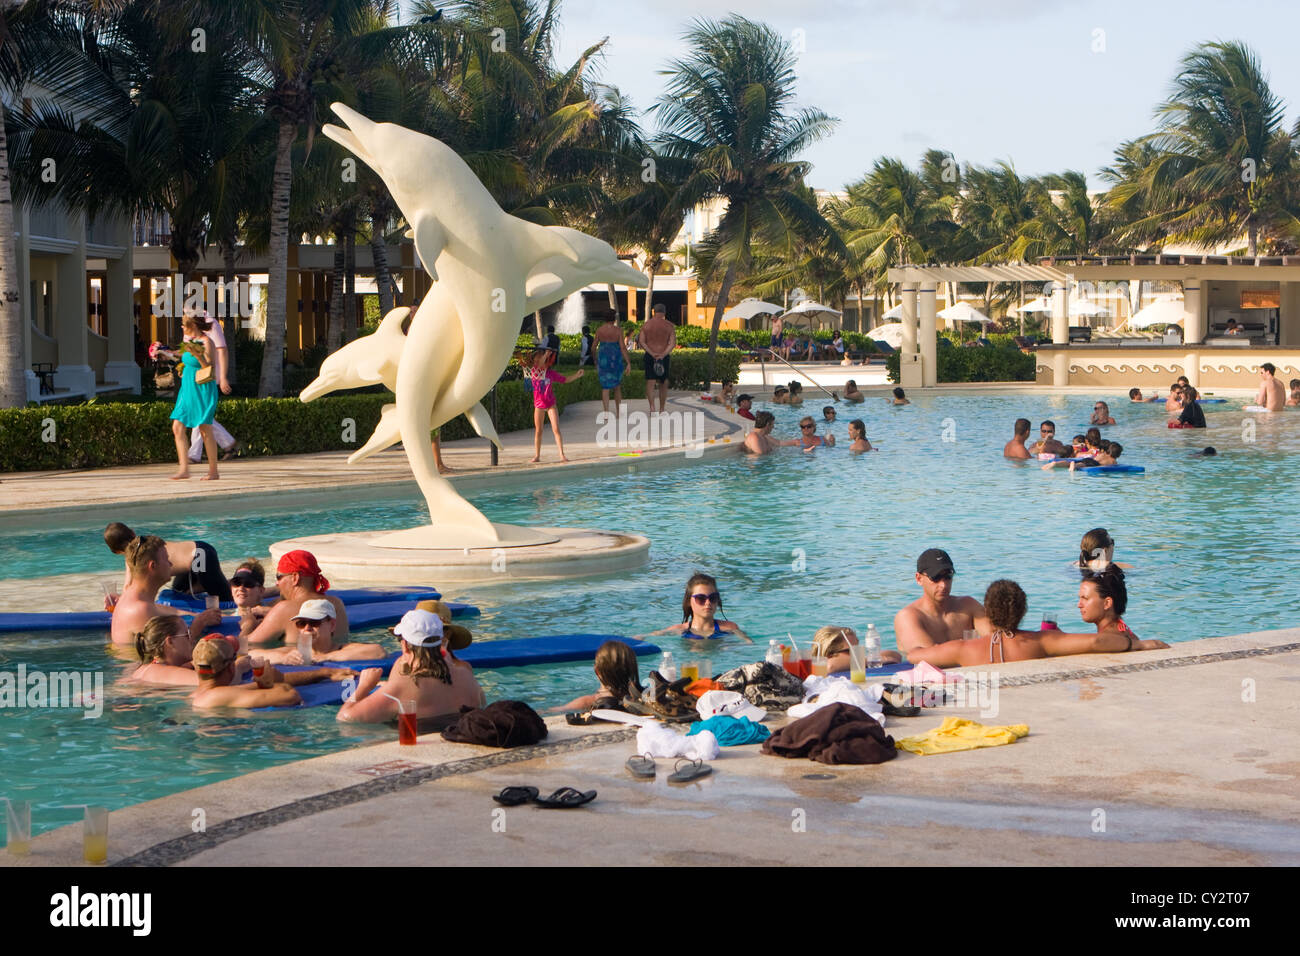 Hotel pool with people  Groups of people in a hotel swimming pool, Mexico Stock Photo ...